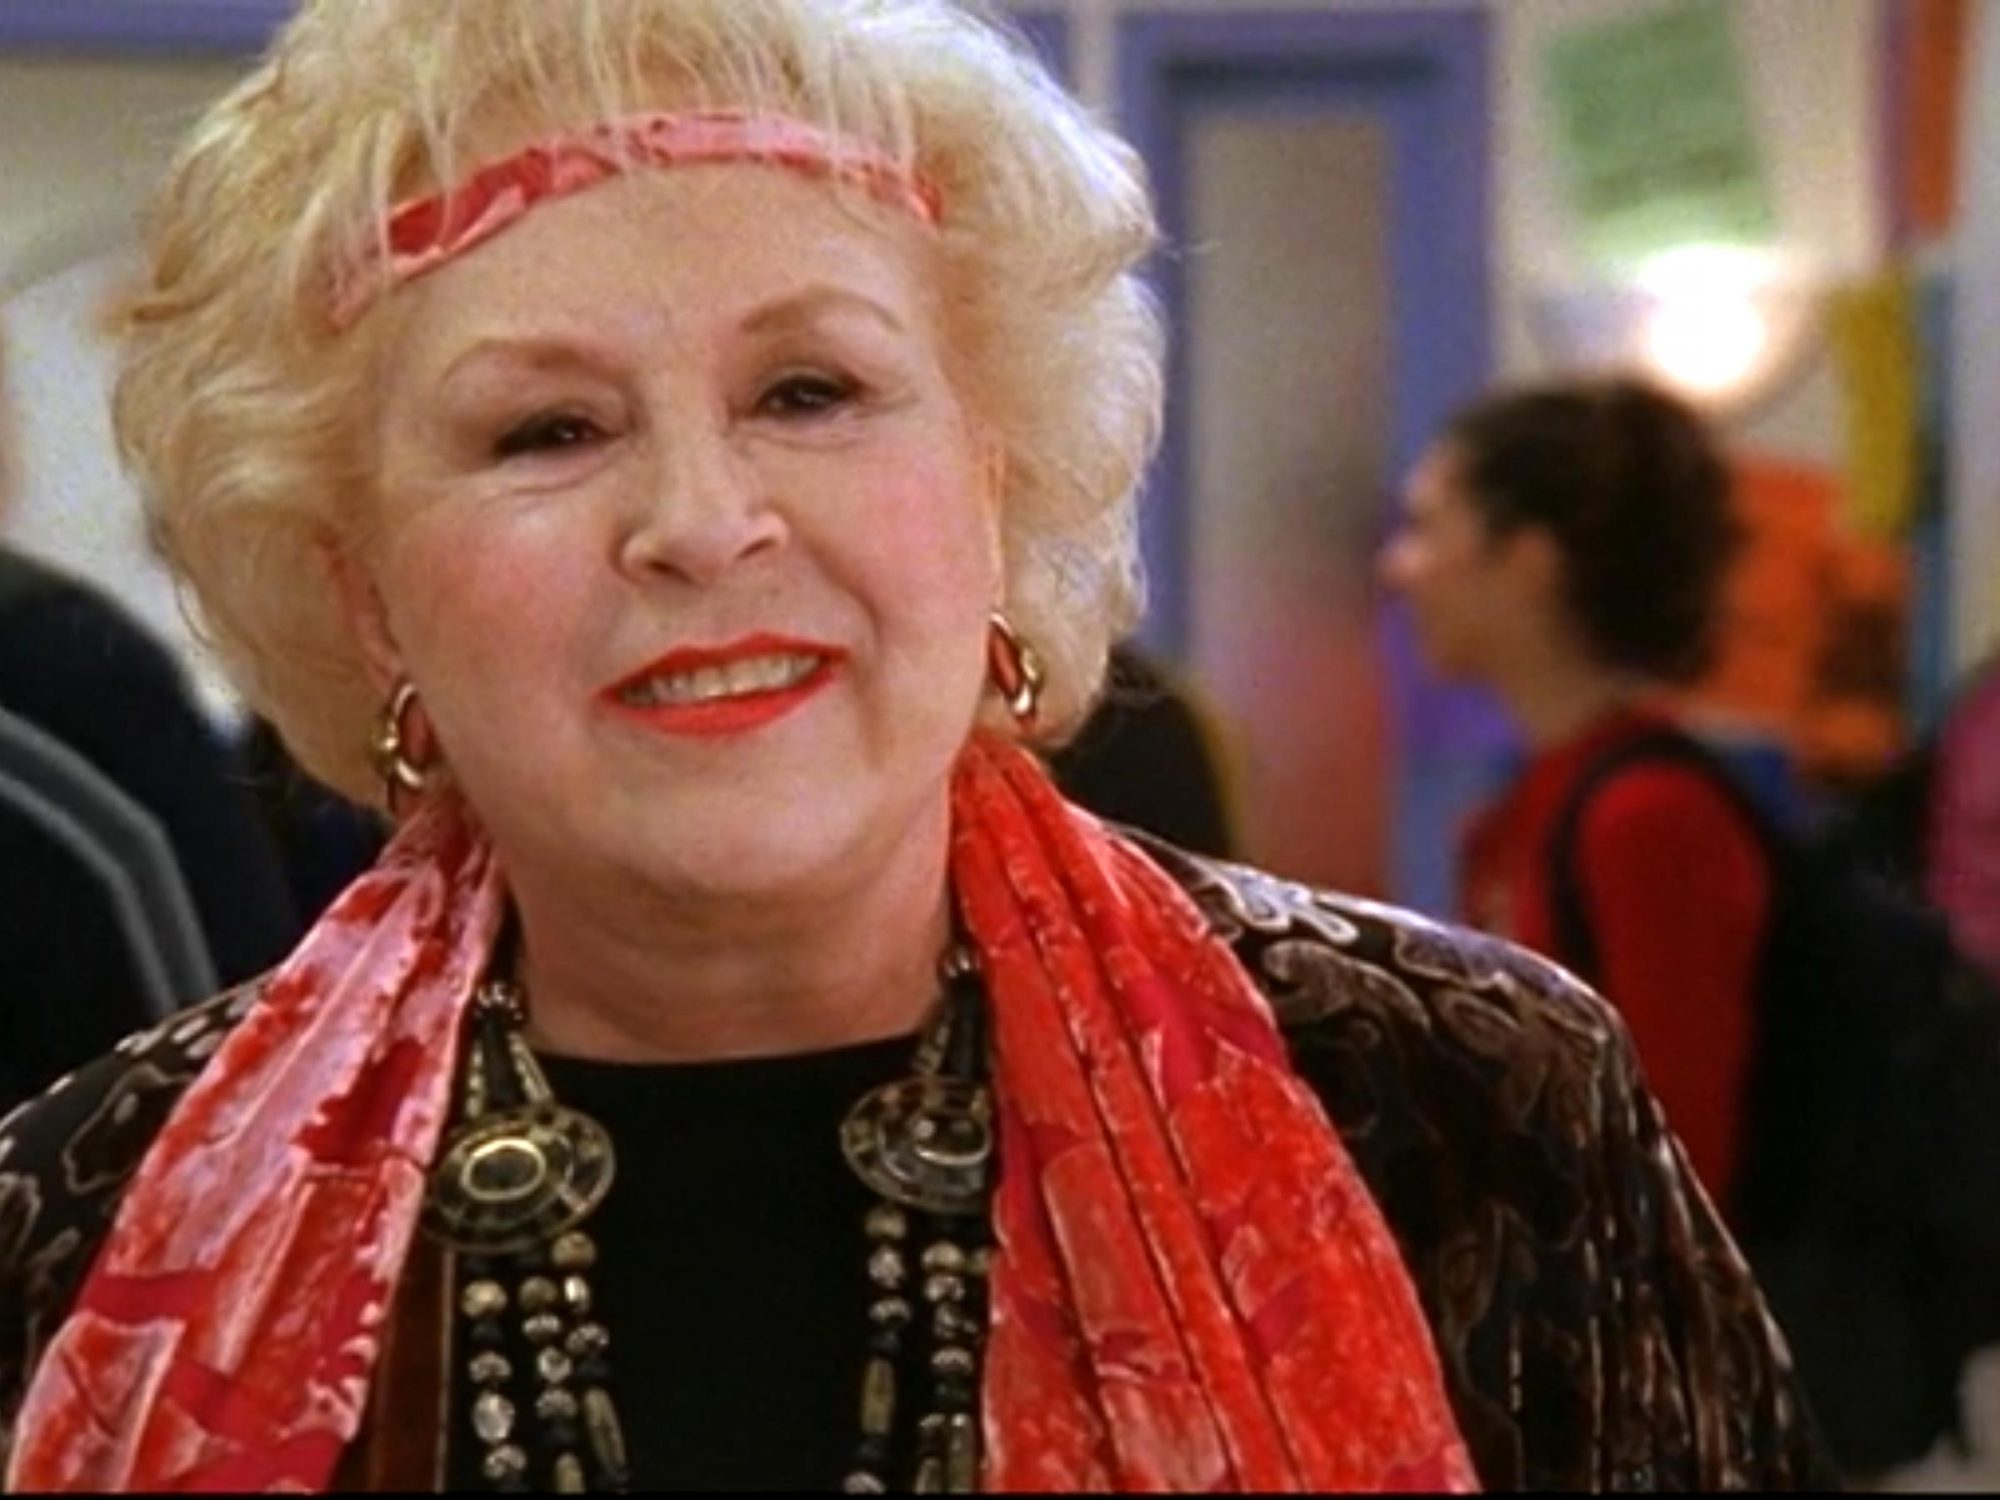 Doris Roberts as Grandma Ruth